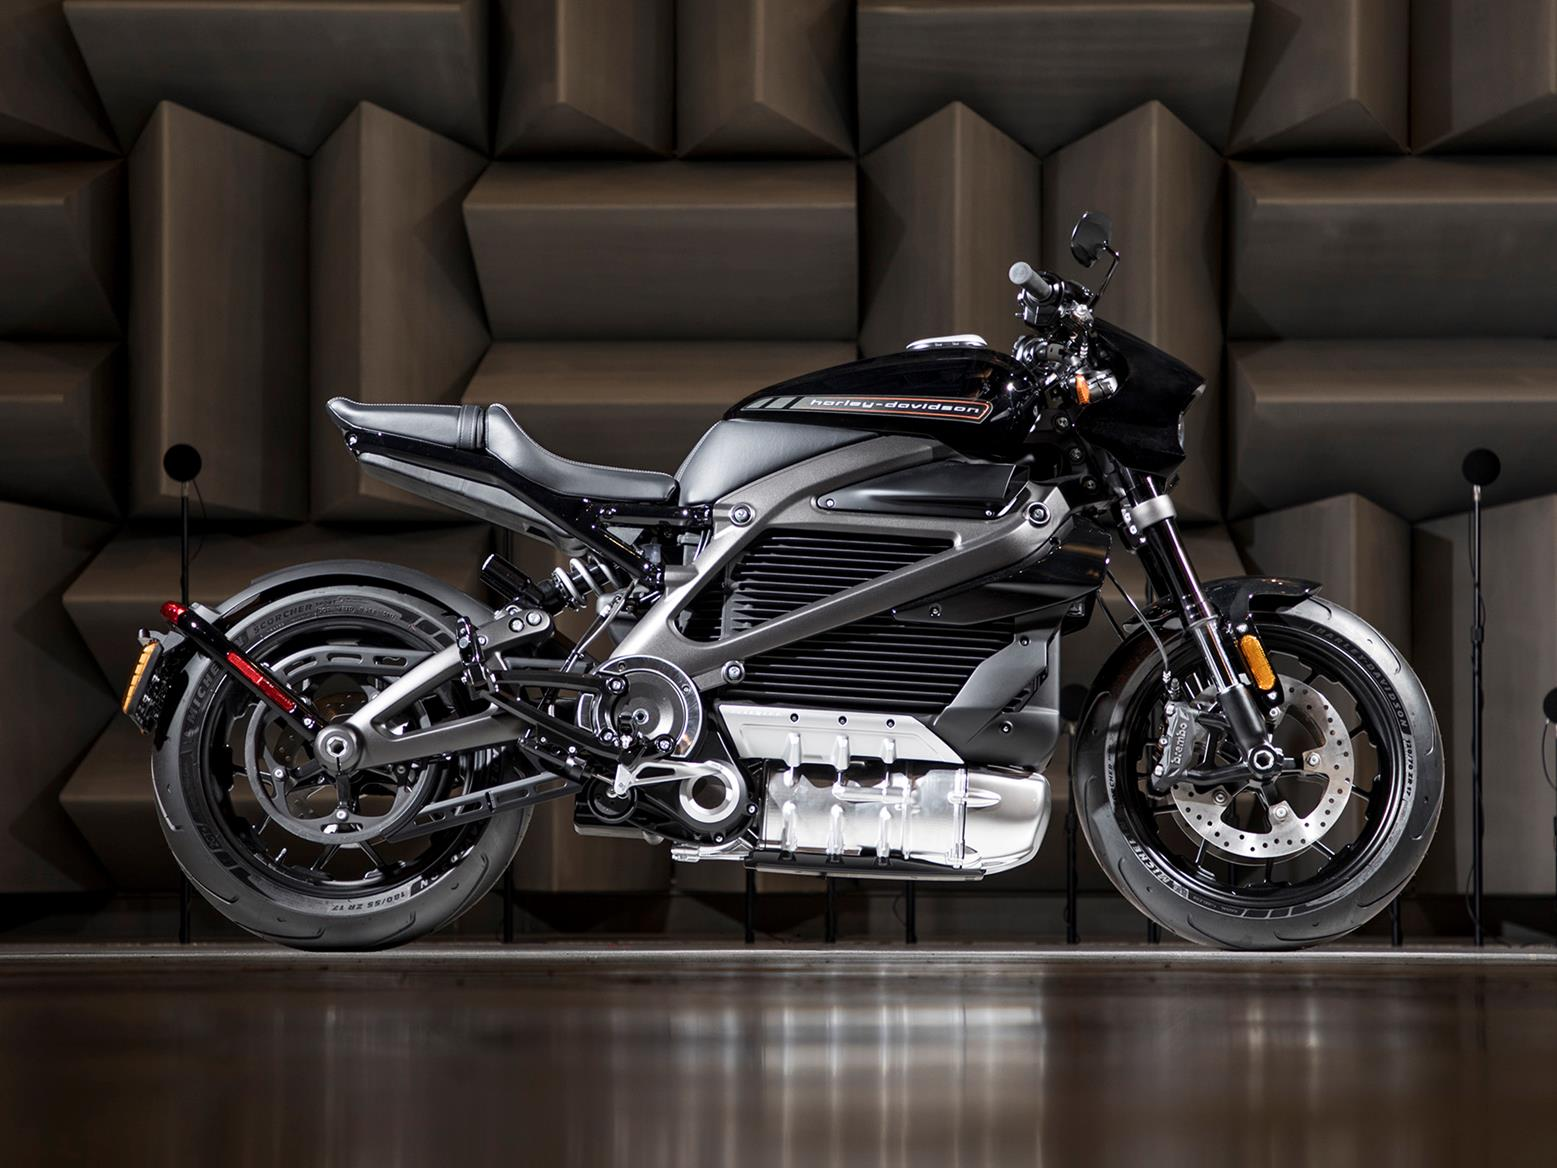 Shhh: Harley-Davidson confirms 'twist and go' electric motorcycle for 2019